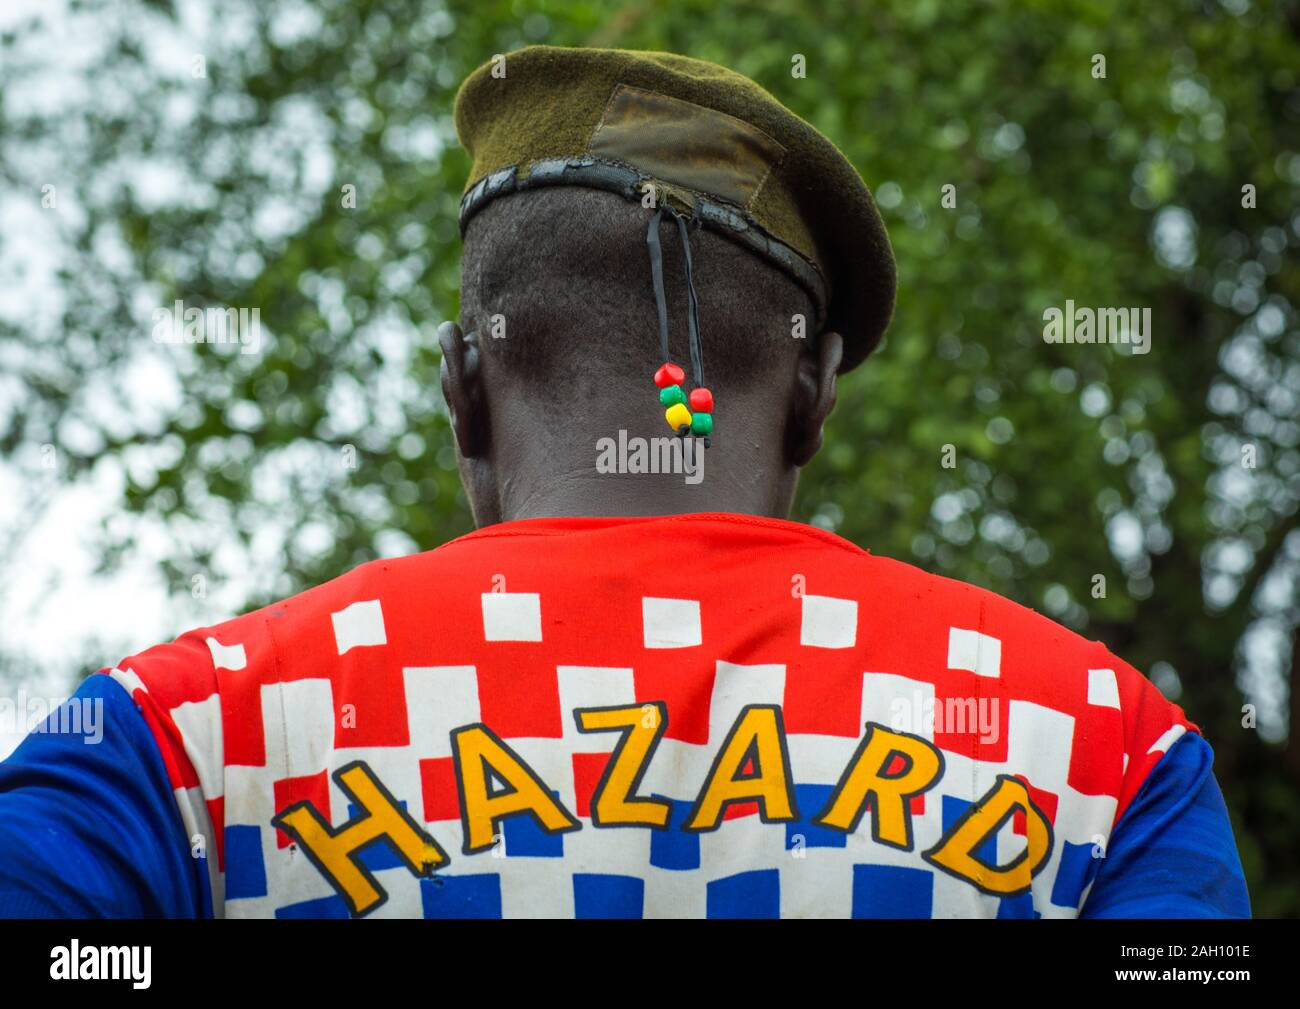 Portrait Of A Former Soldier From Larim Tribe Wearing A Chelsea